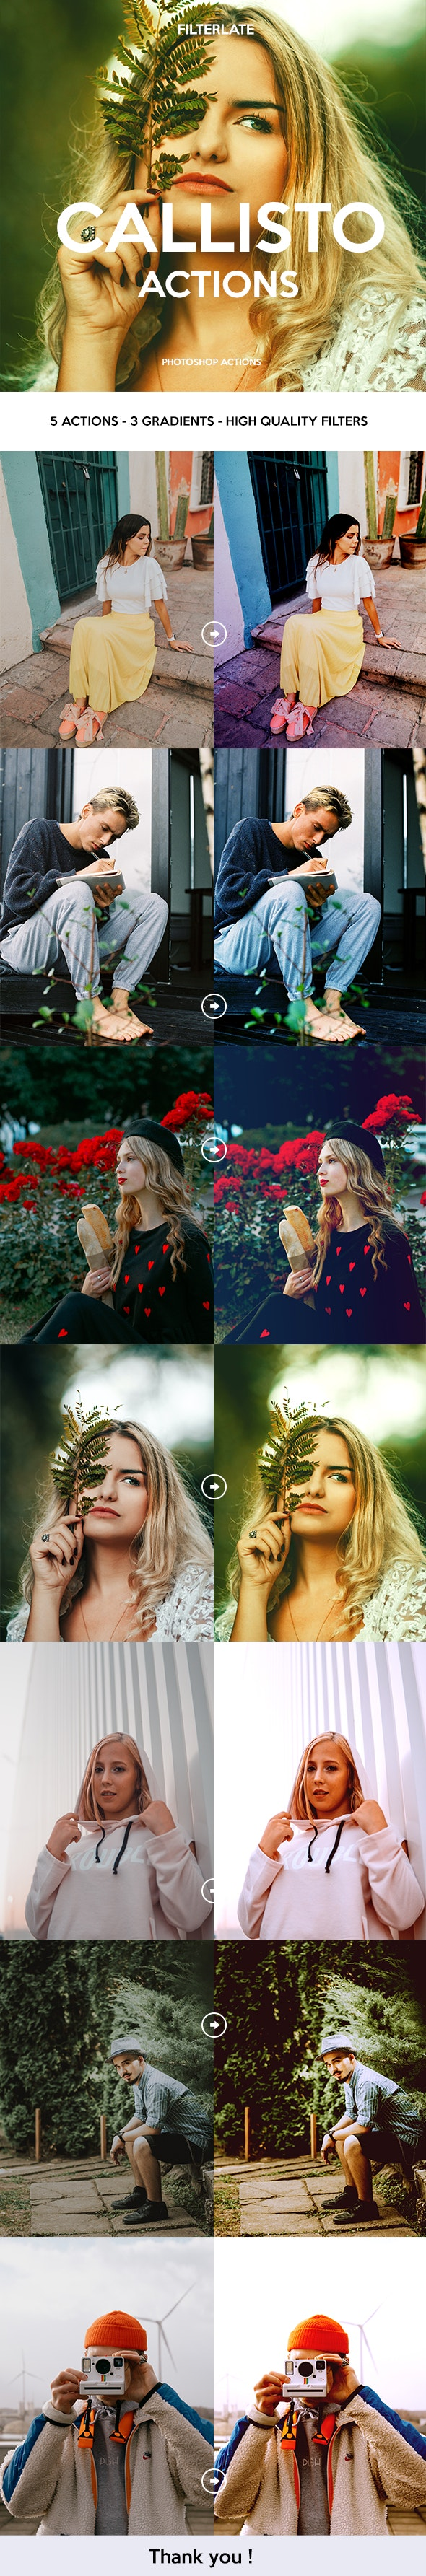 Callisto Actions - Photo Effects Actions